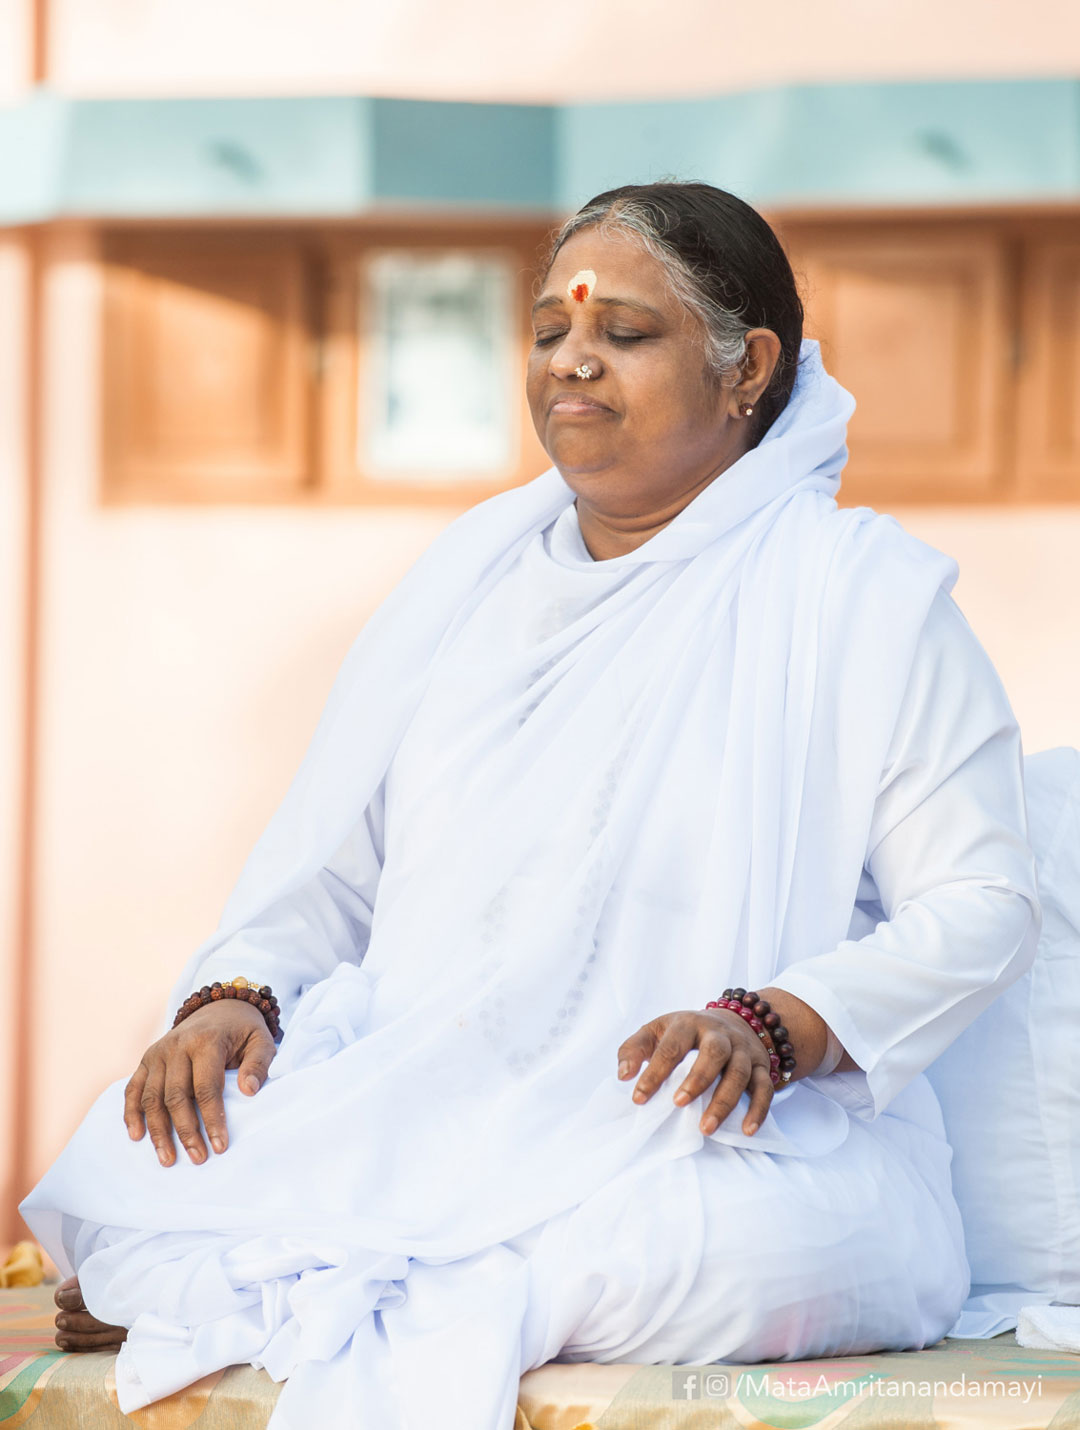 Mata Amritanandamayi 67th birthday